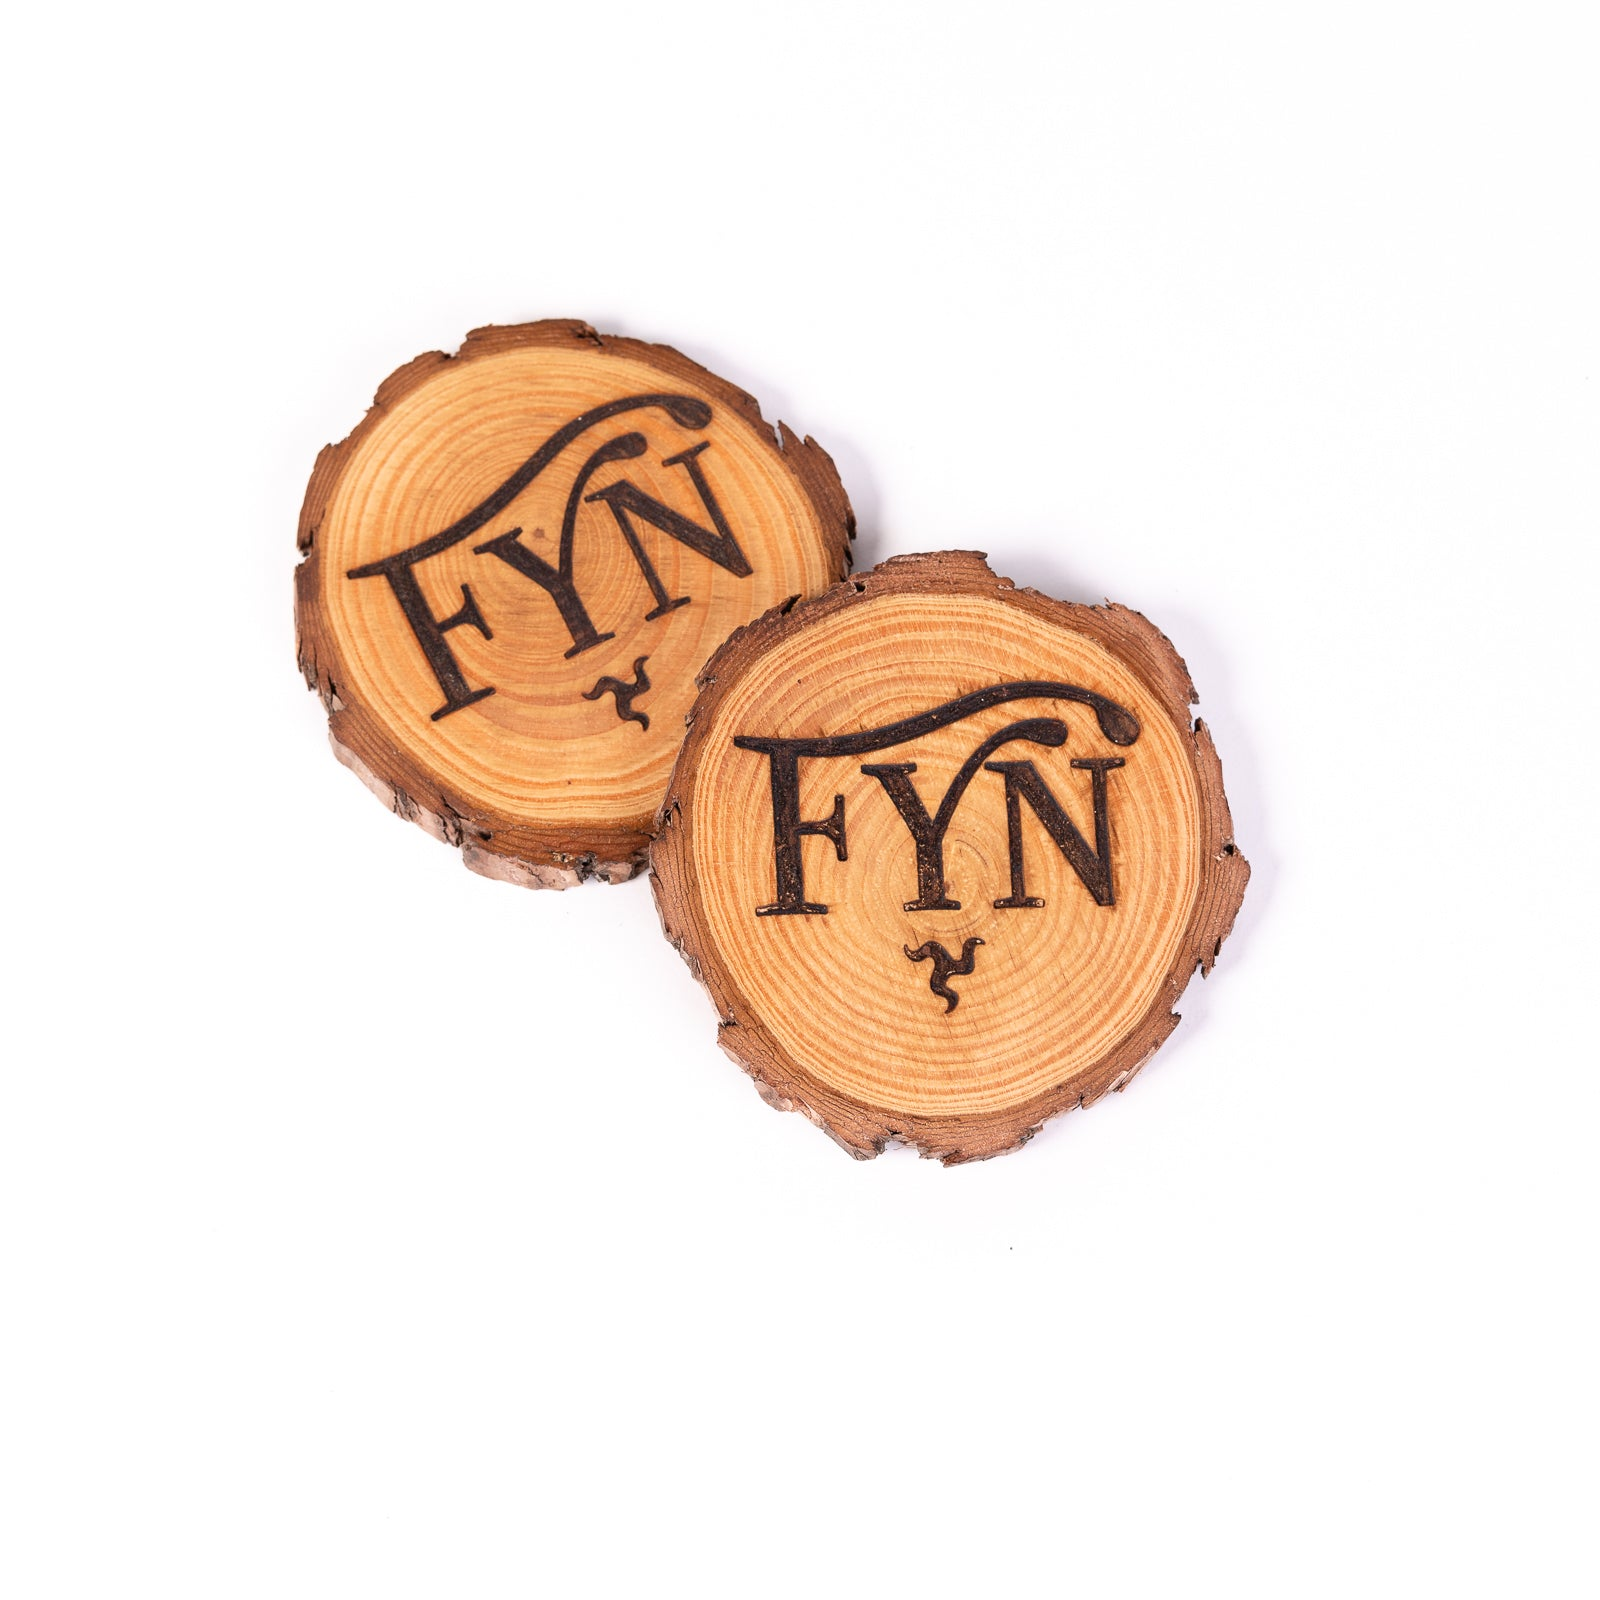 Pair of Carved Wooden Fyn Coasters